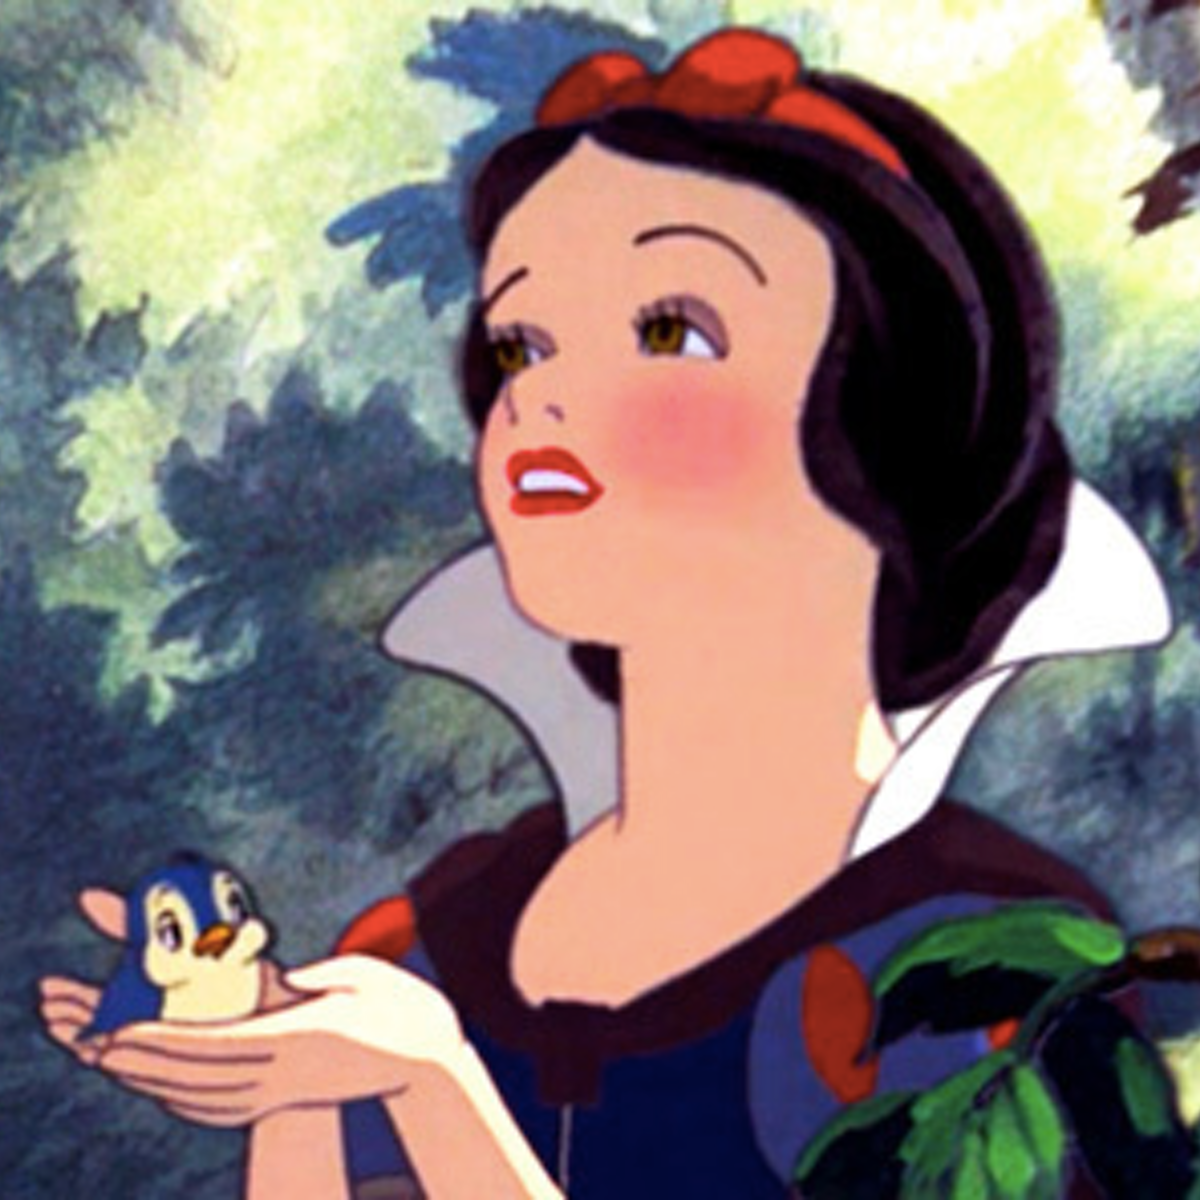 Snow White At 80 Disney May Be Flawed But We Are Still In Thrall To Its Cartoon Magic